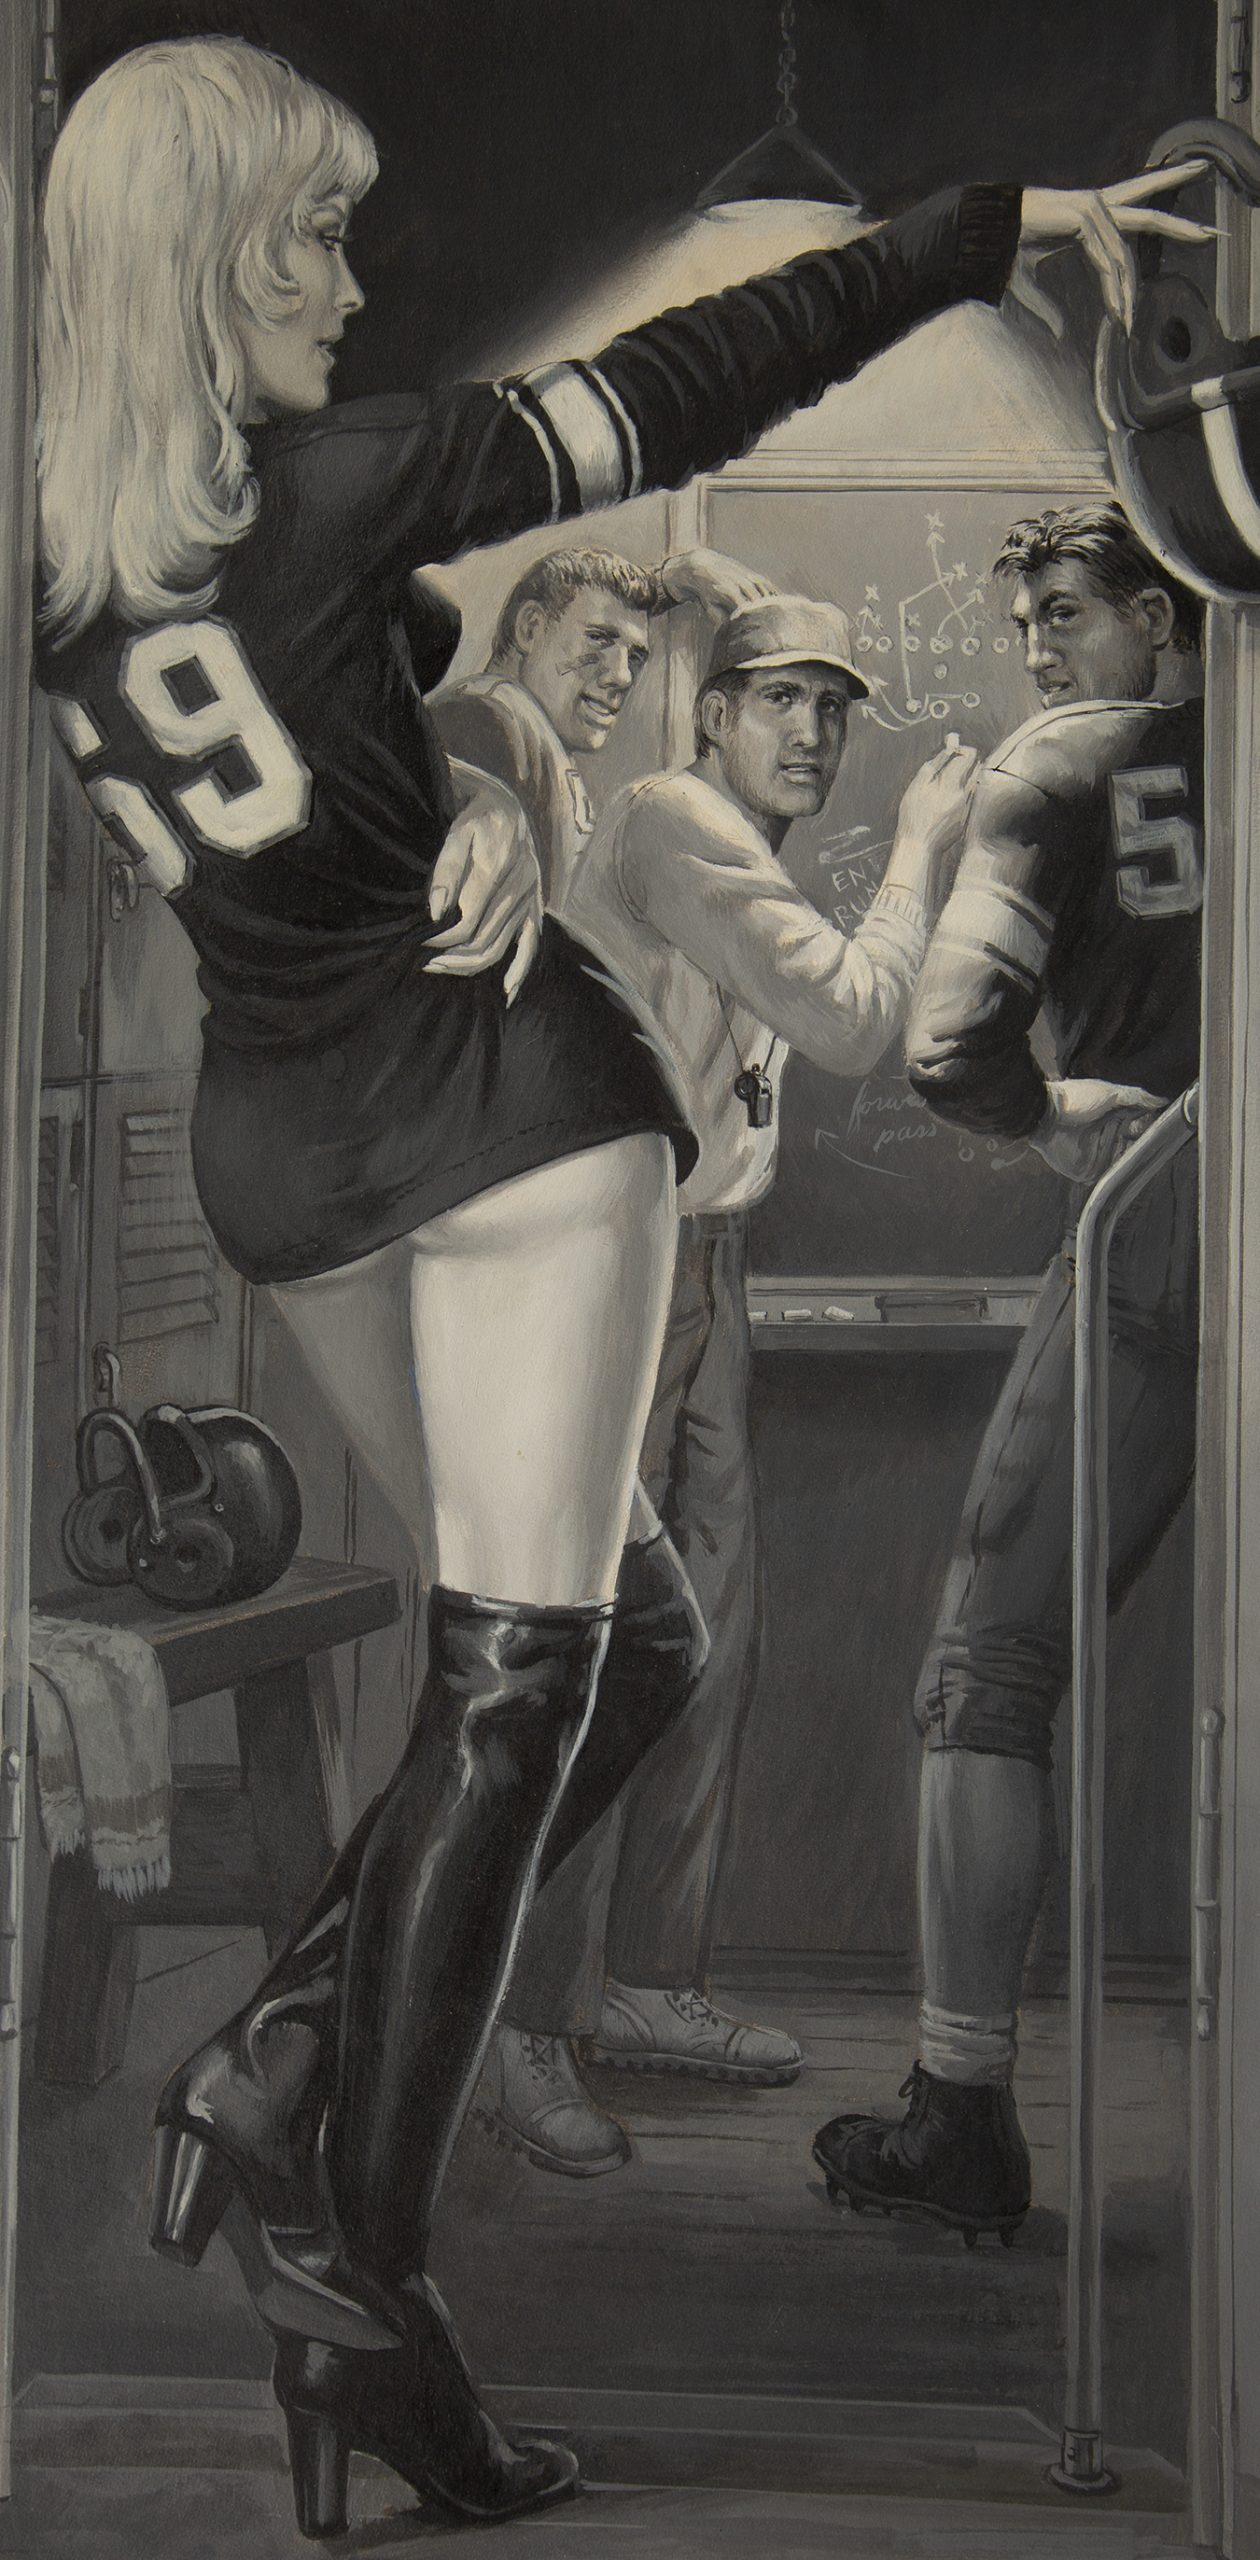 A detailed view of blonde pin-up girl in football jersey